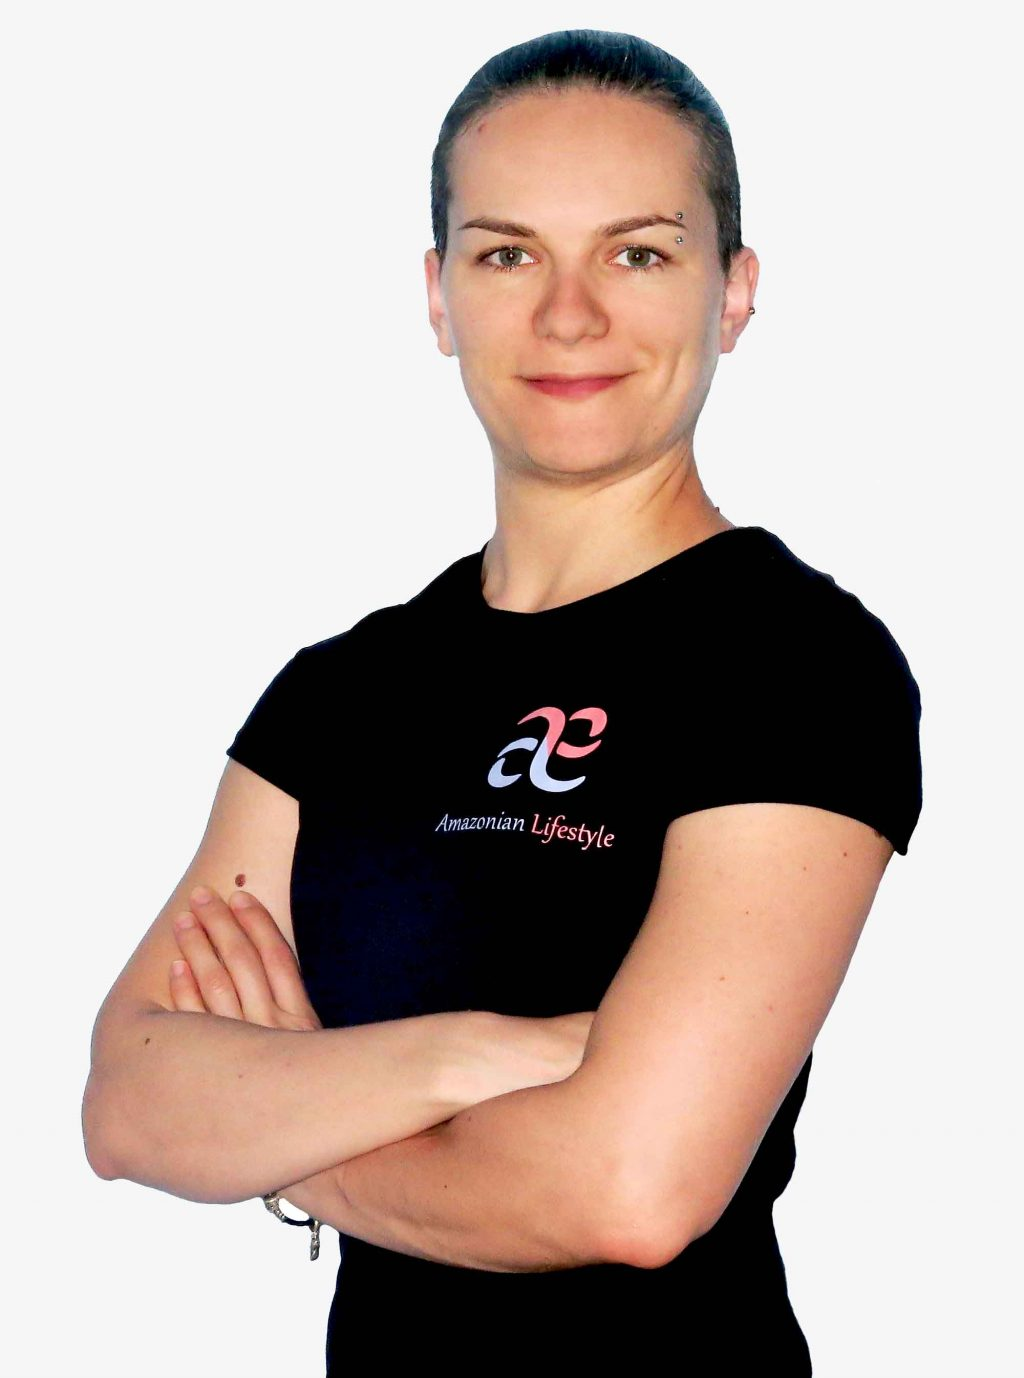 Personal Trainer Chicago, Illinois - Ljupka Mijalkovska